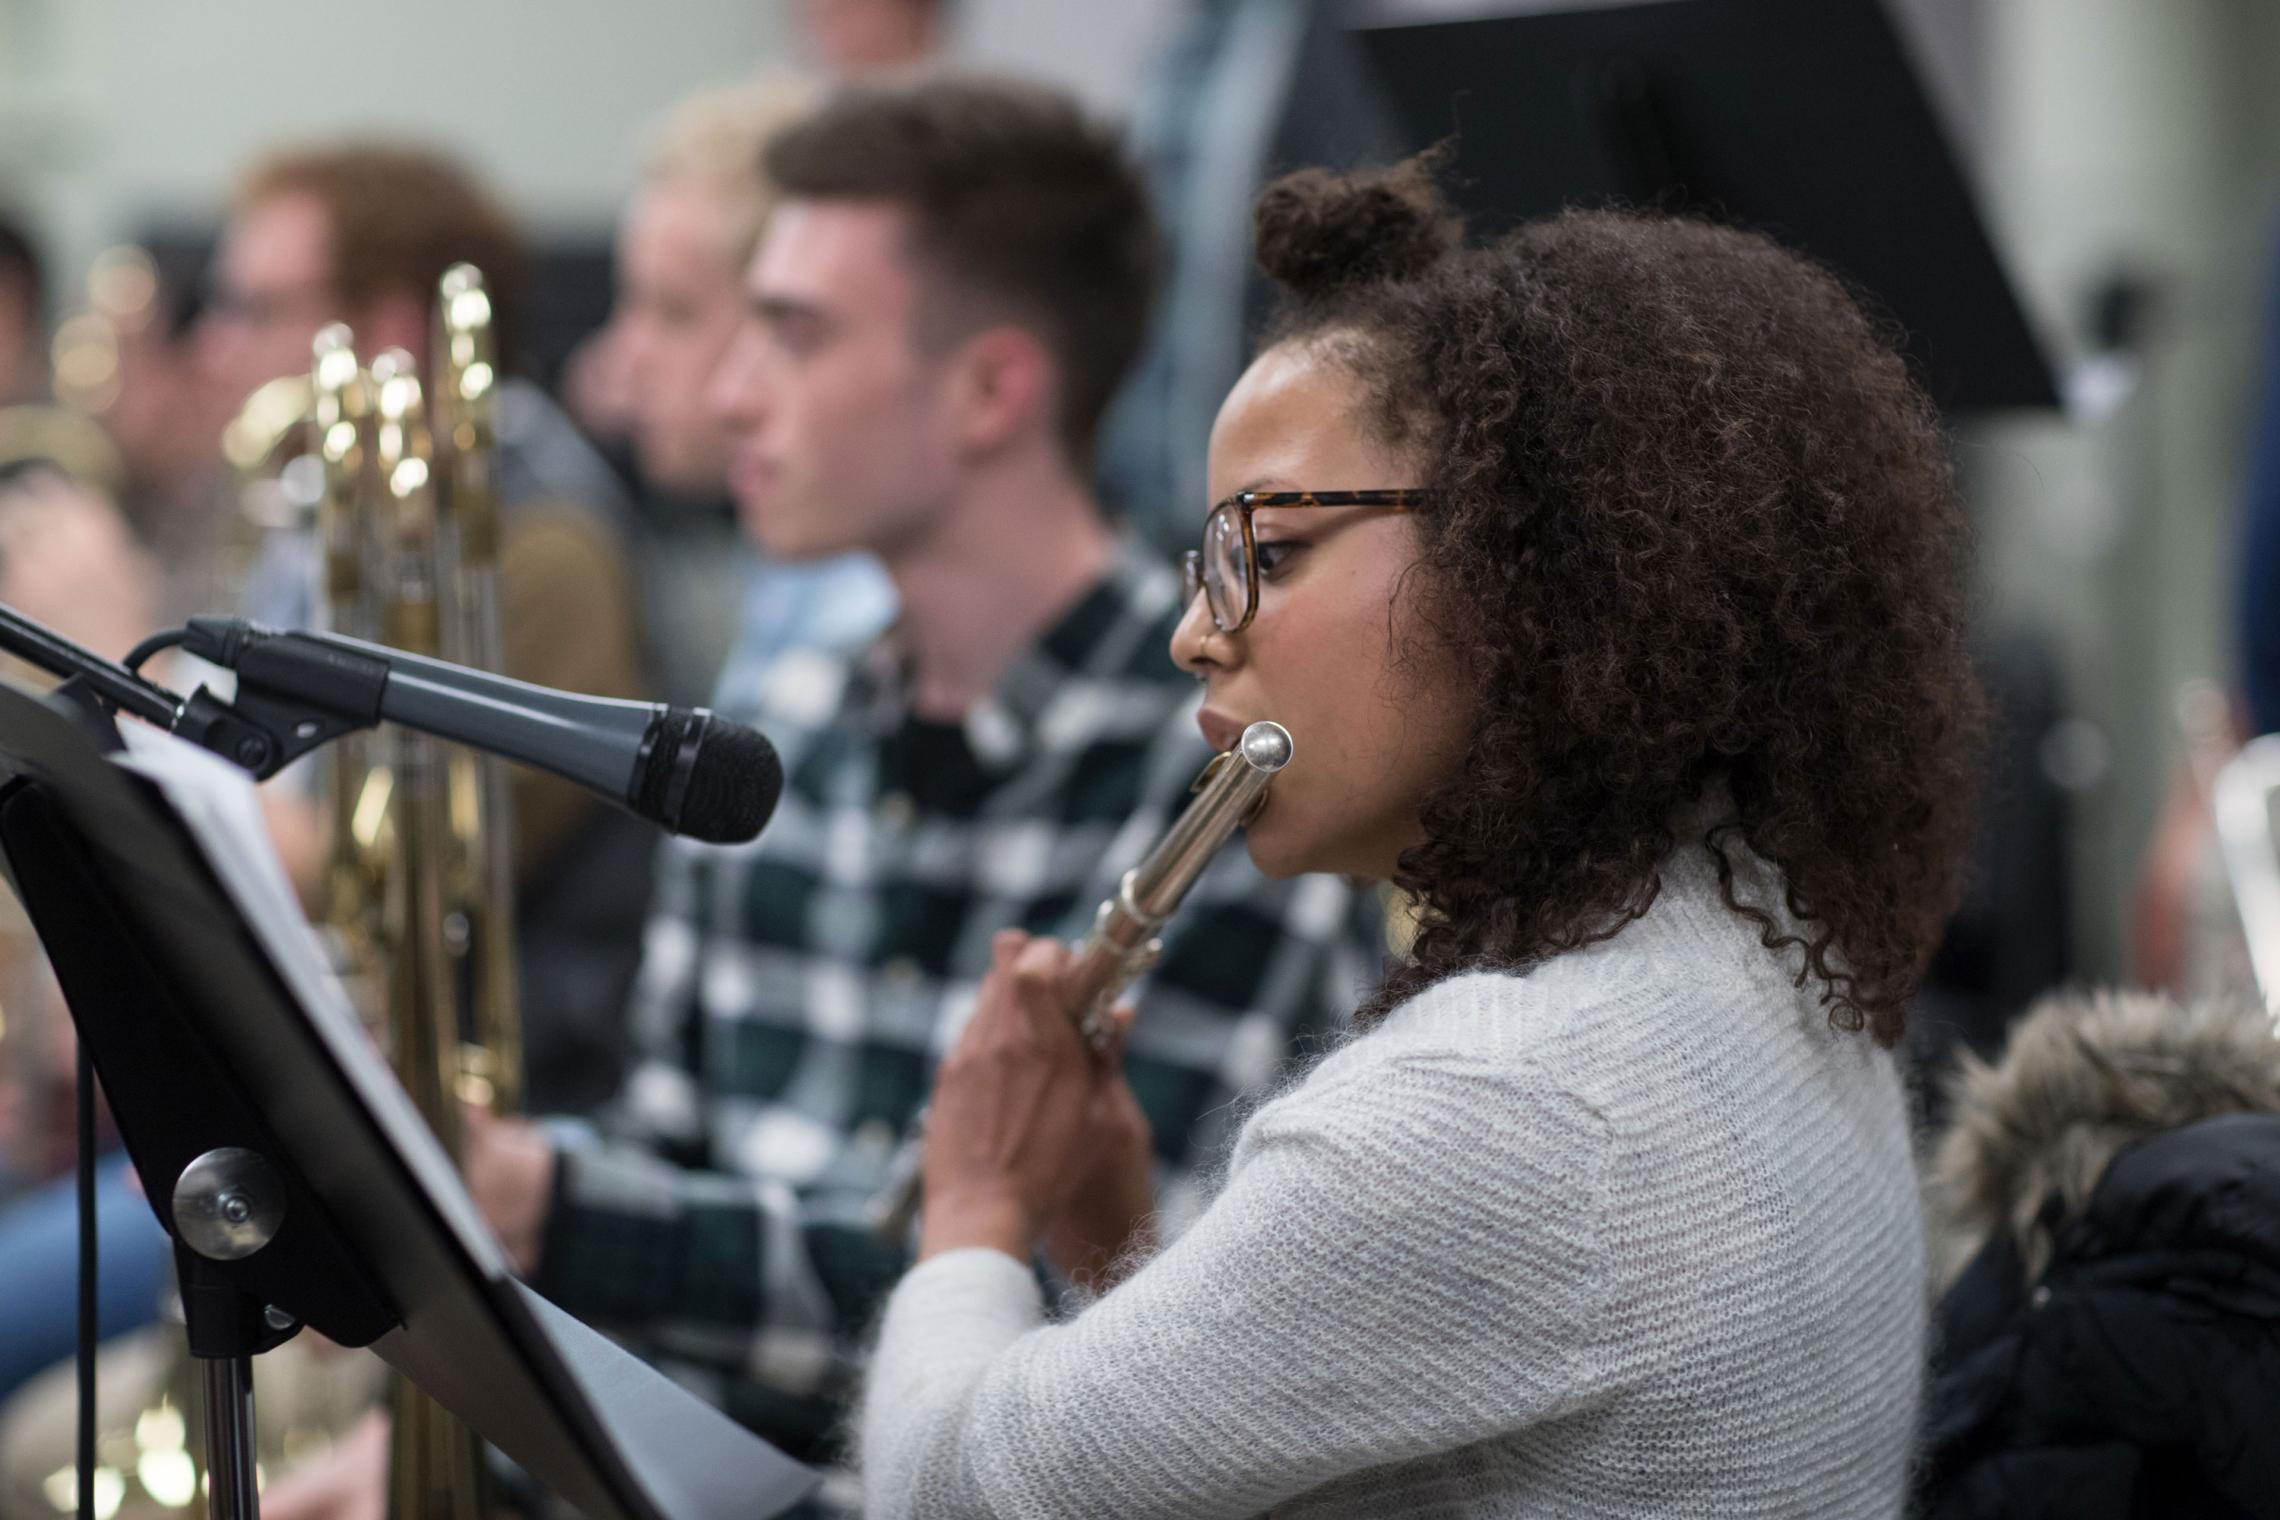 The Jazz Ensemble is among the many student groups that give multiple performances a year, culminating in a flurry of activity at the end of the semester.